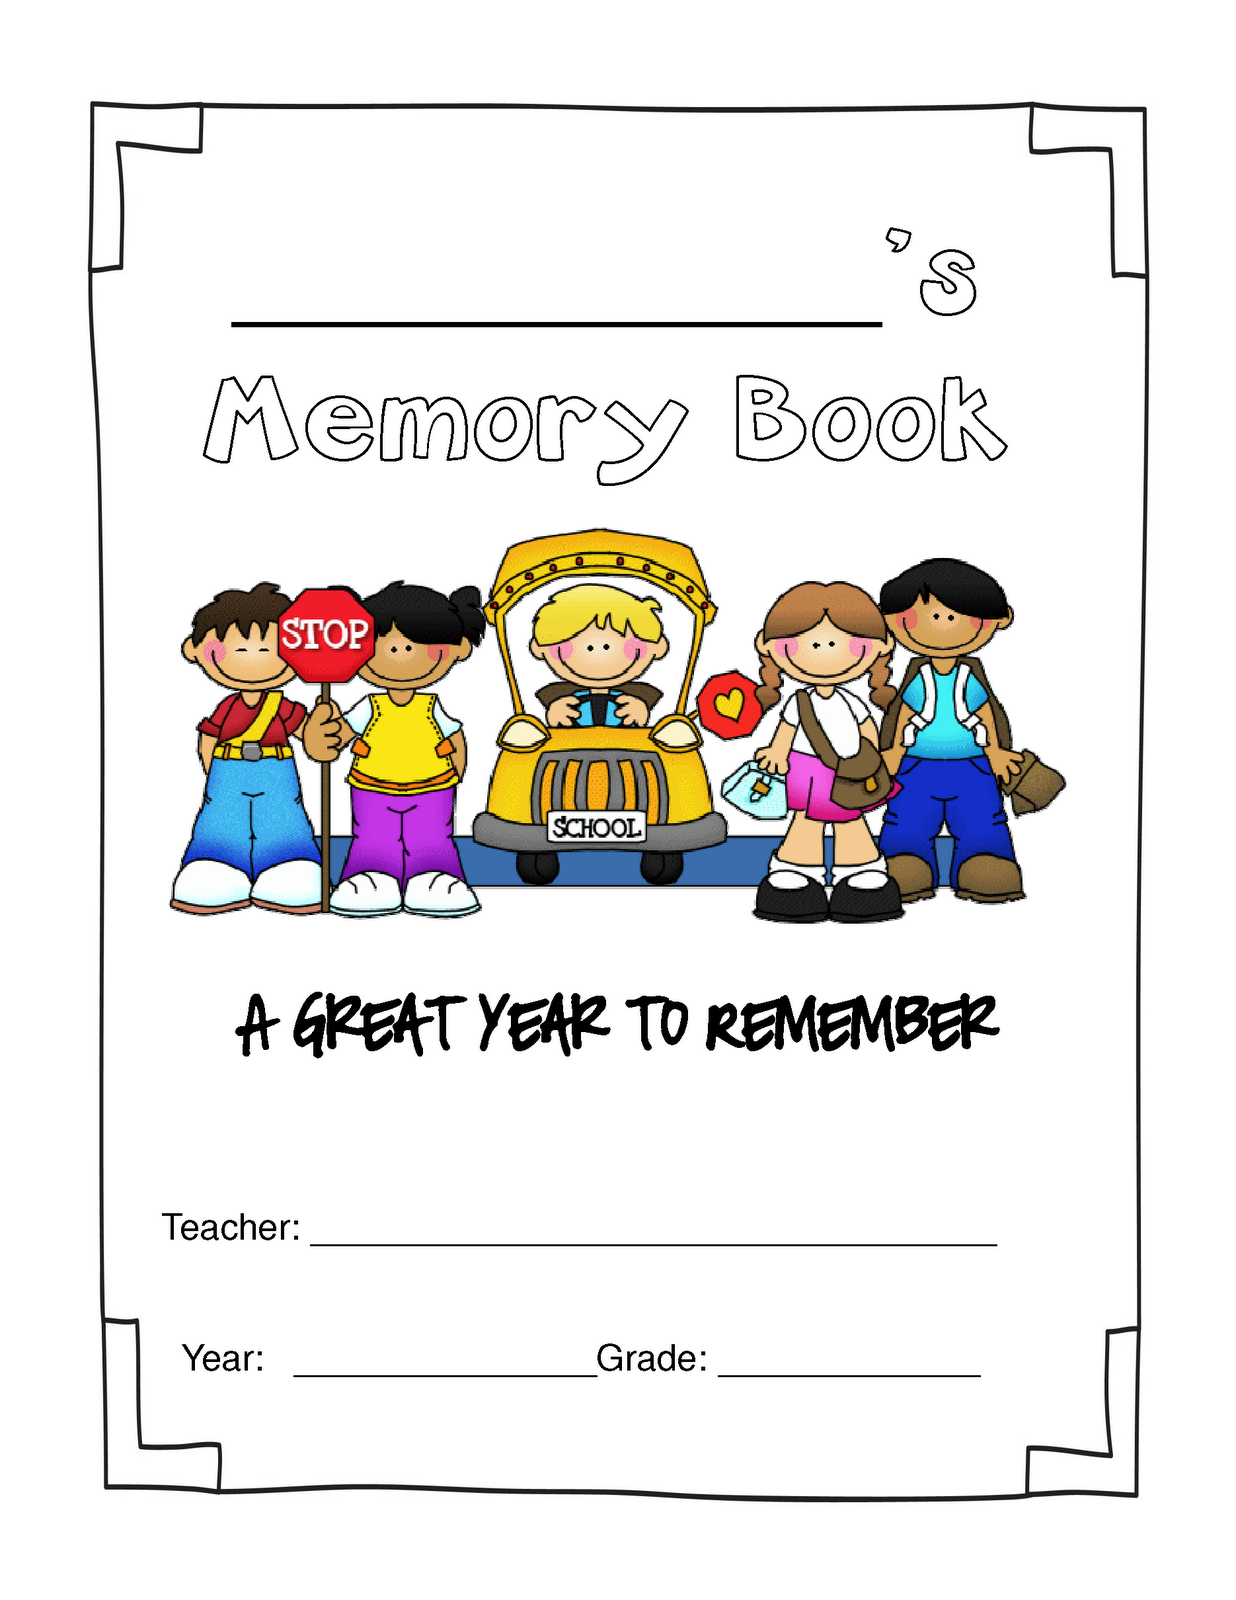 Bobook clipart book page Download The Page The Clipart